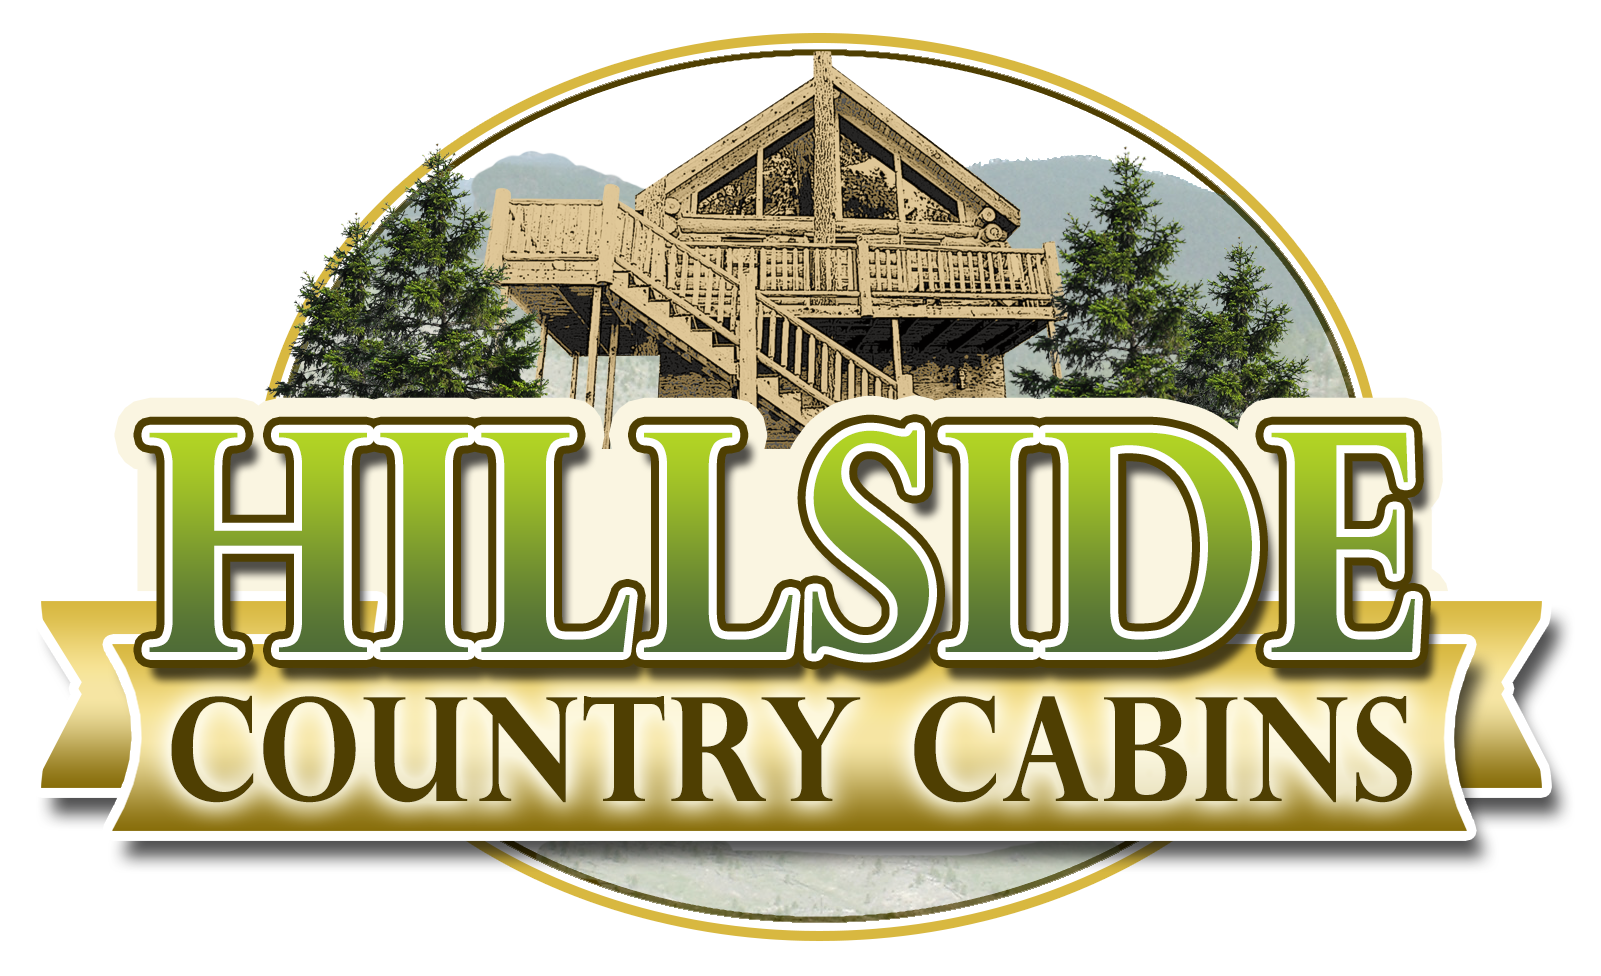 Hillside Country Cabins